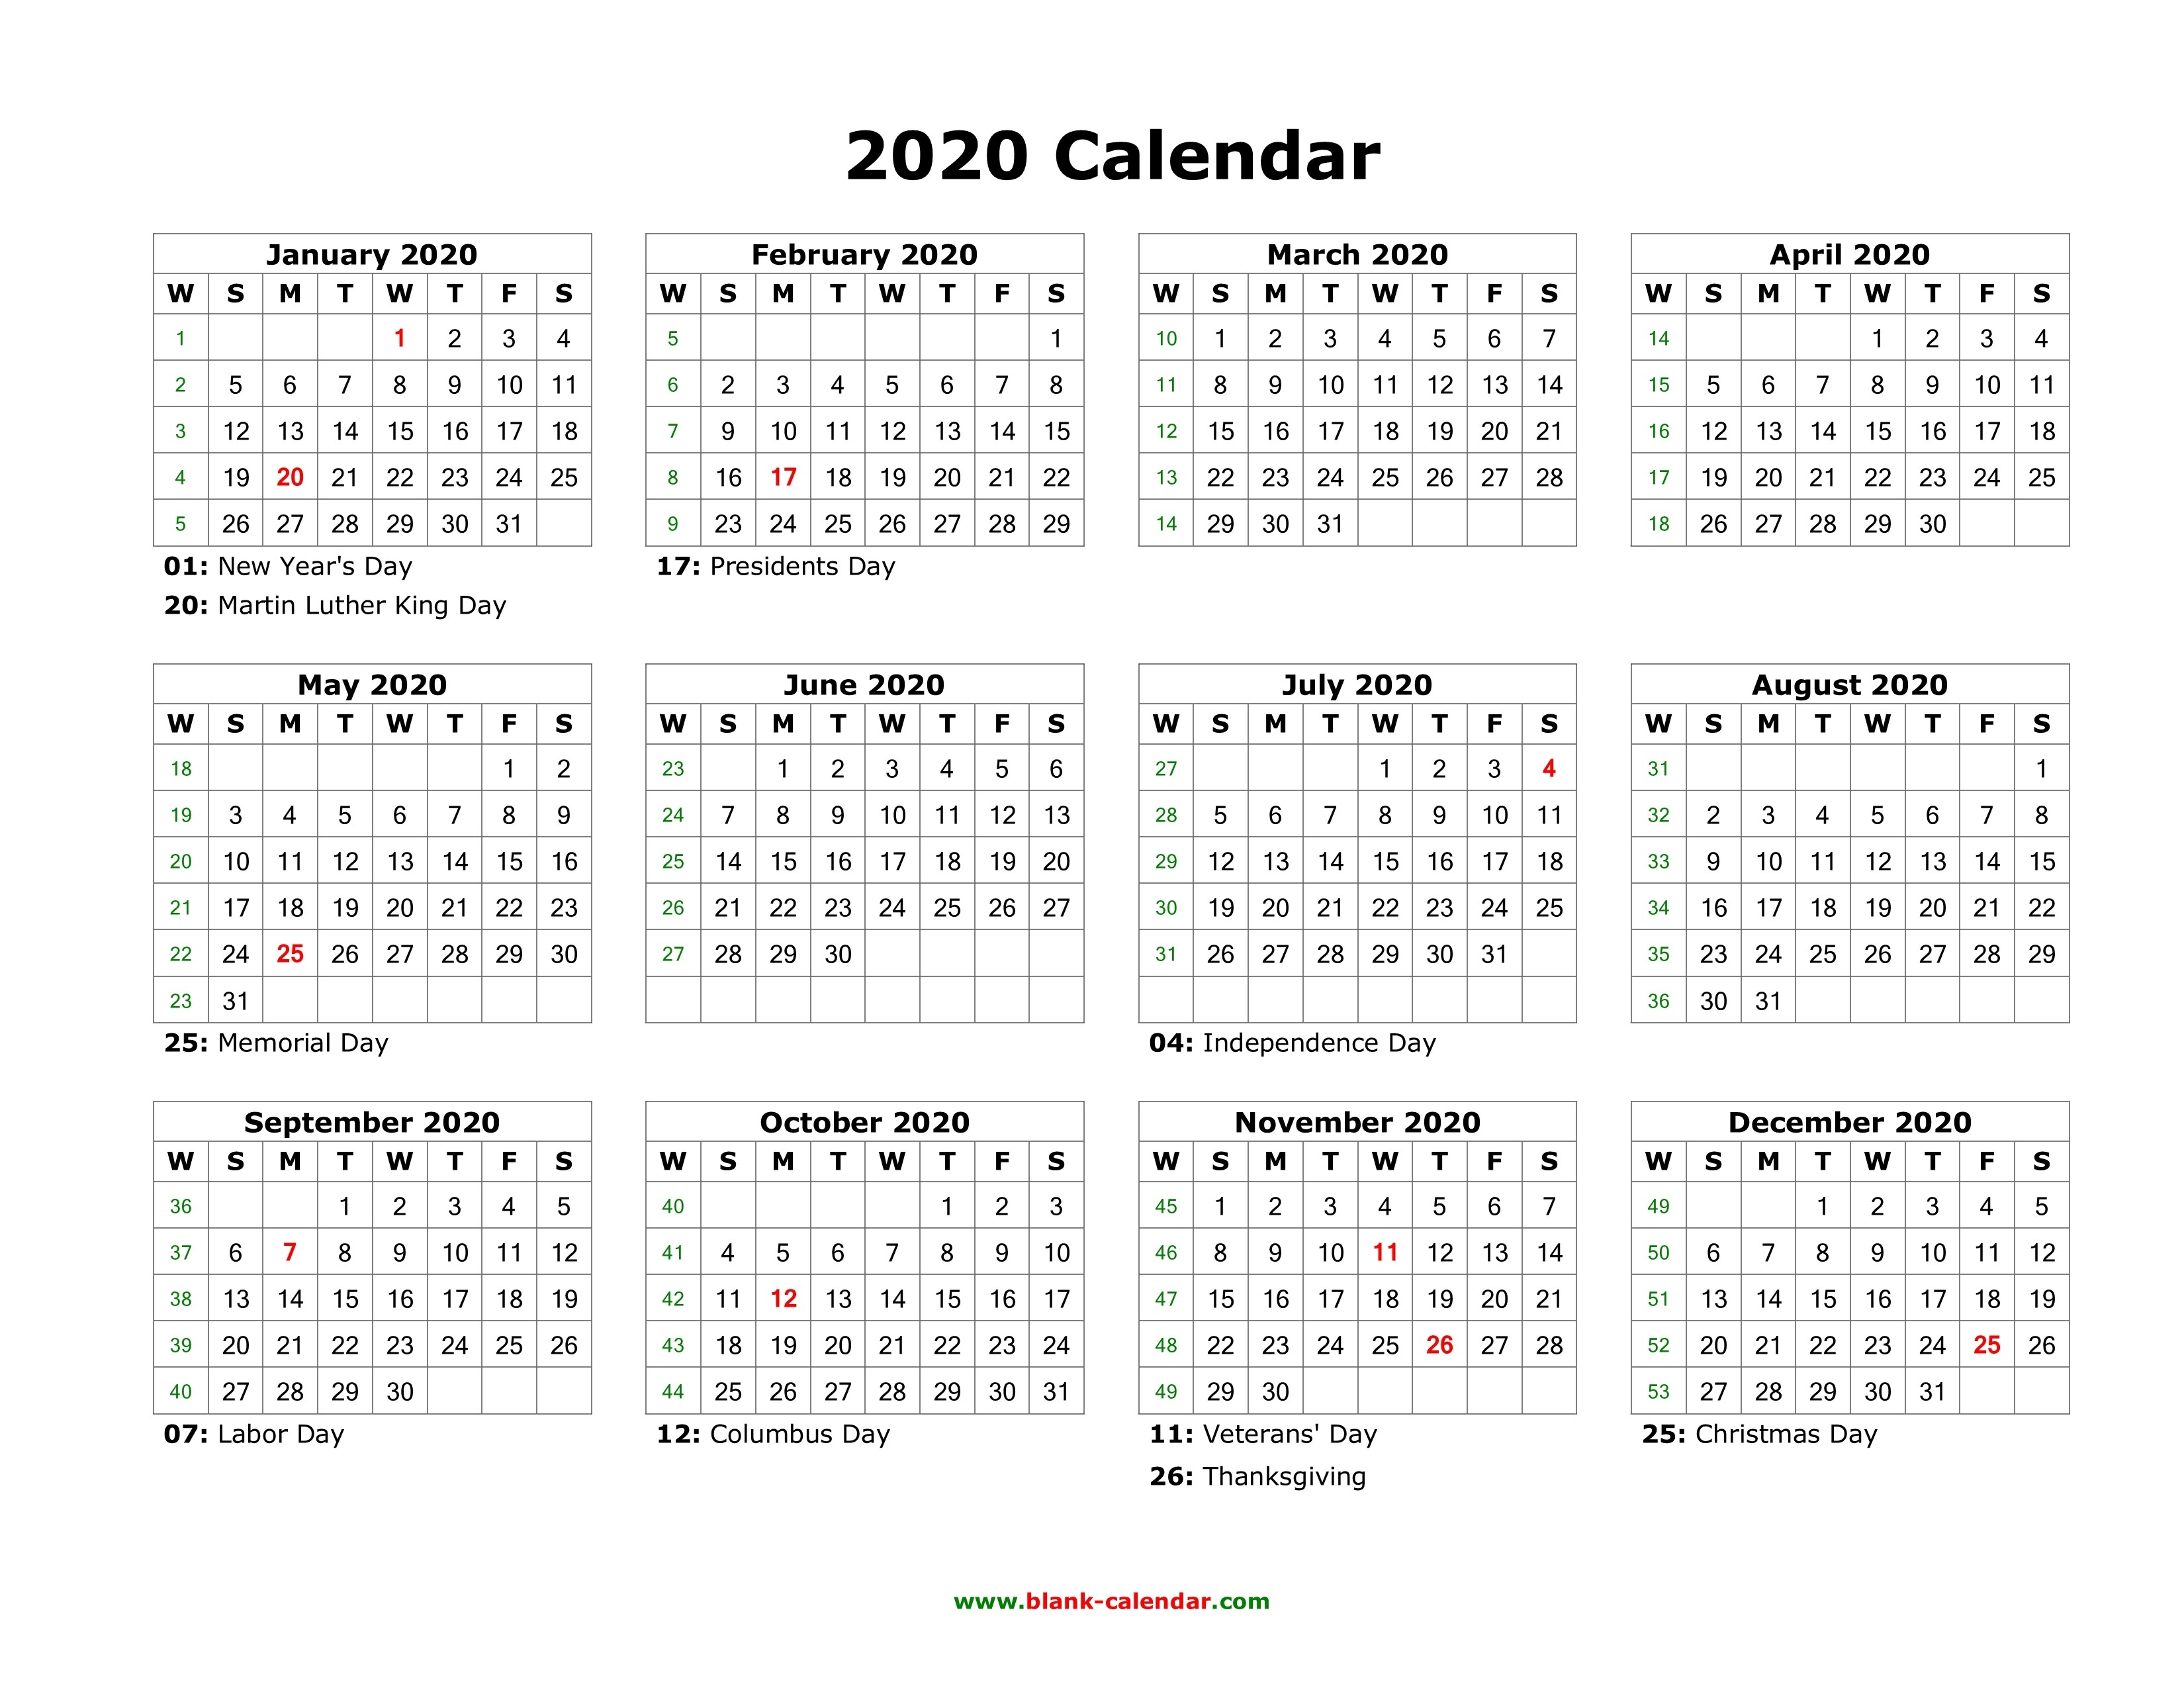 Blank Calendar 2020 | Free Download Calendar Templates-Monthly Calendar 2020 With Holidays Template